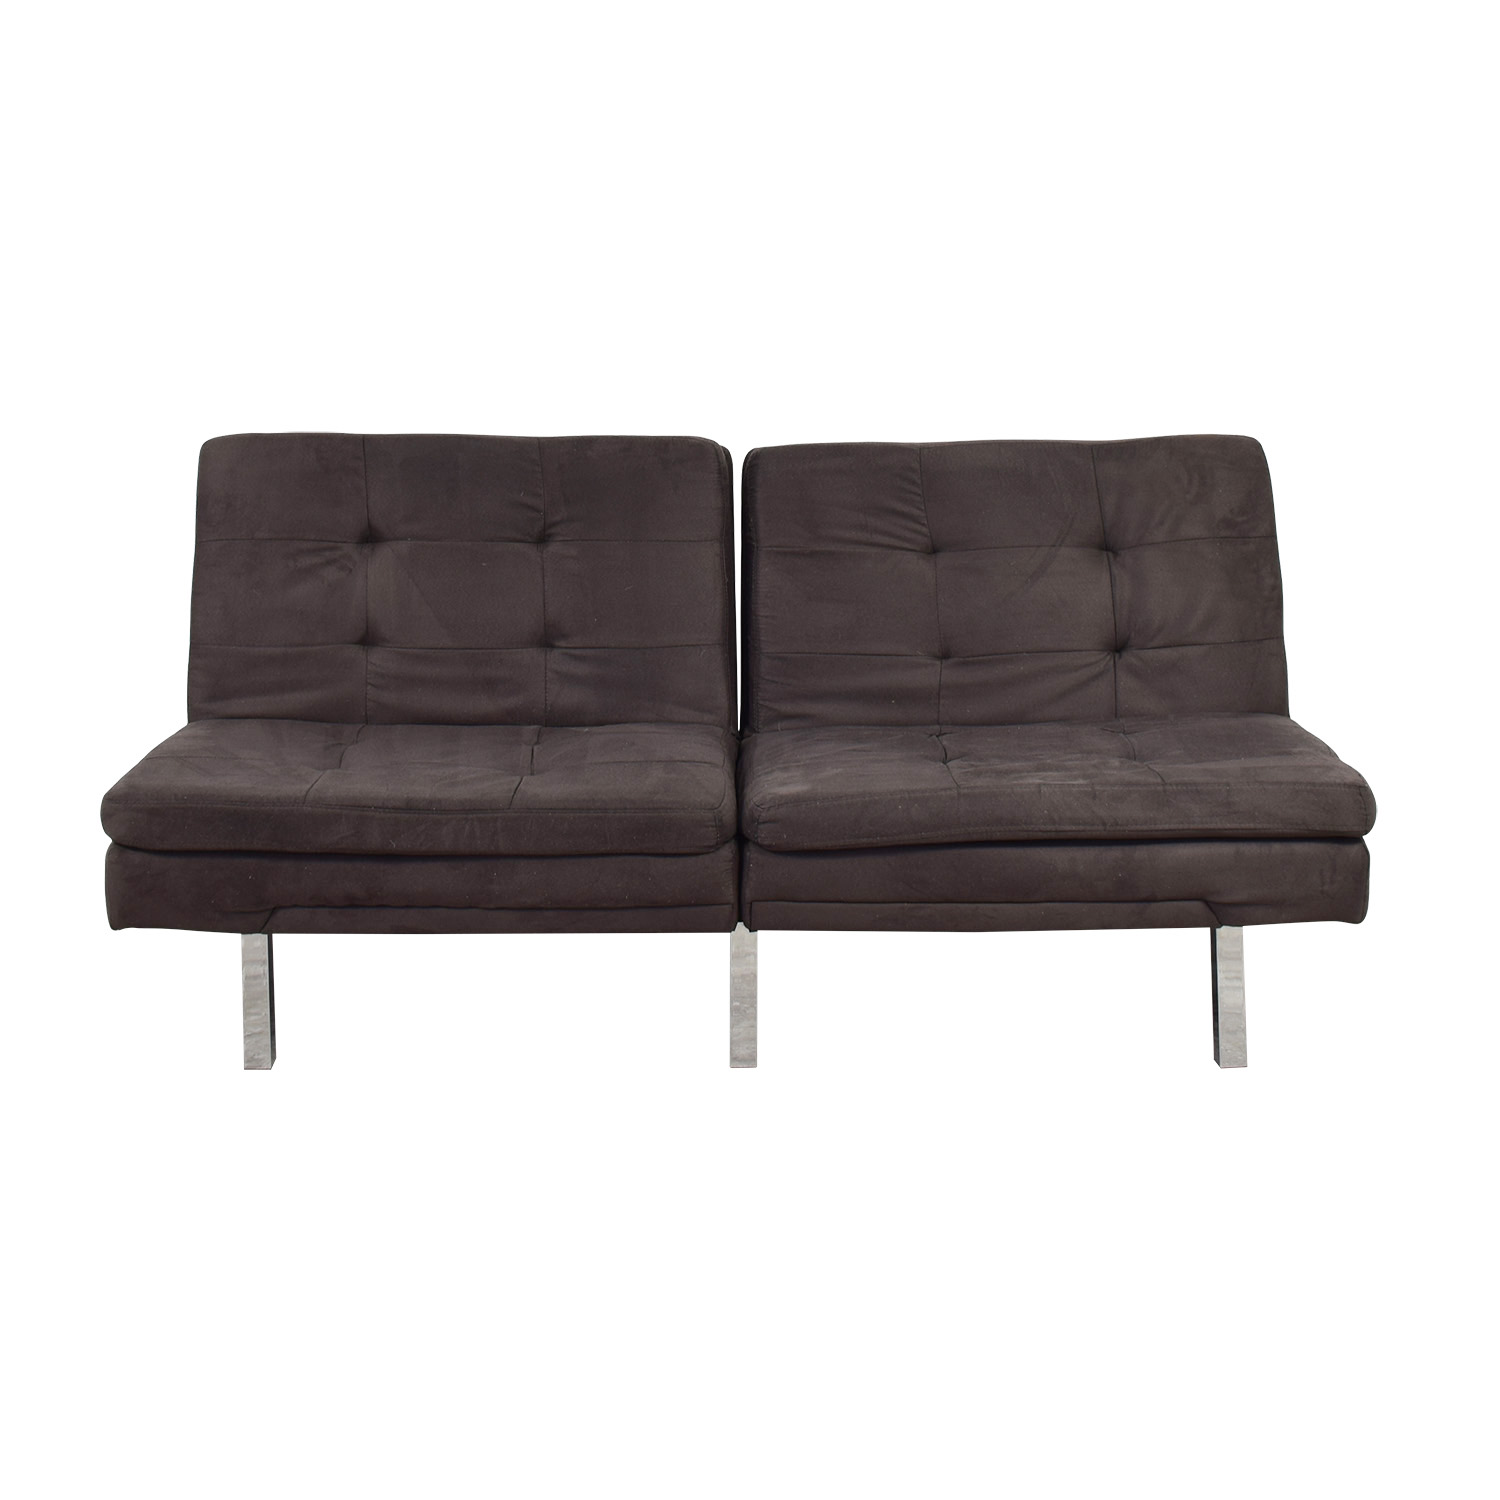 Charcoal Convertible Sofa second hand